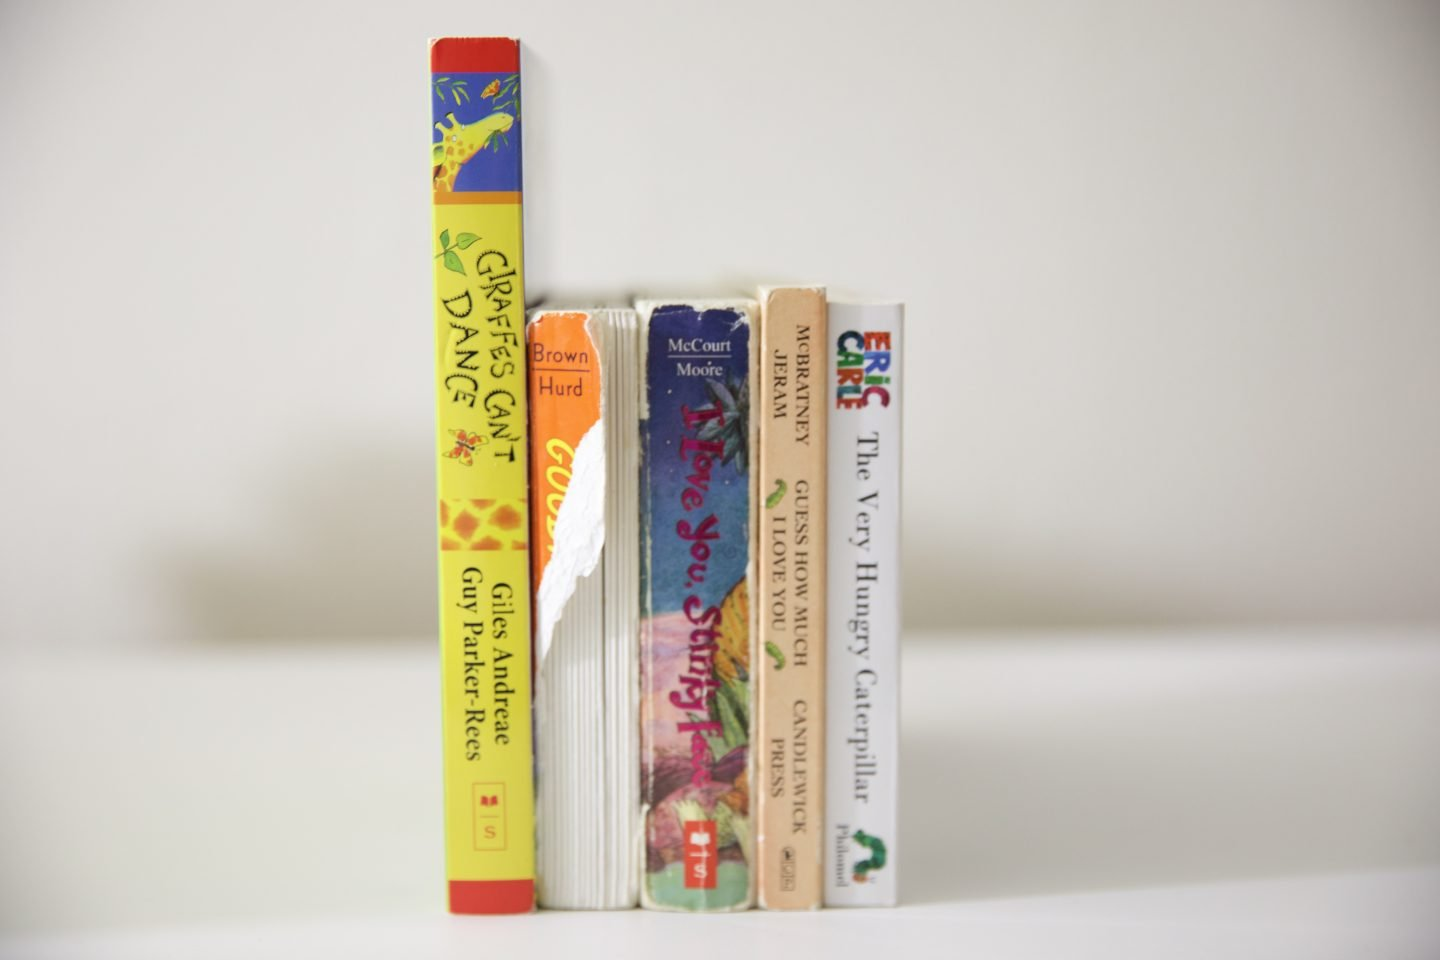 My Favorite Board Books to Read to My Baby